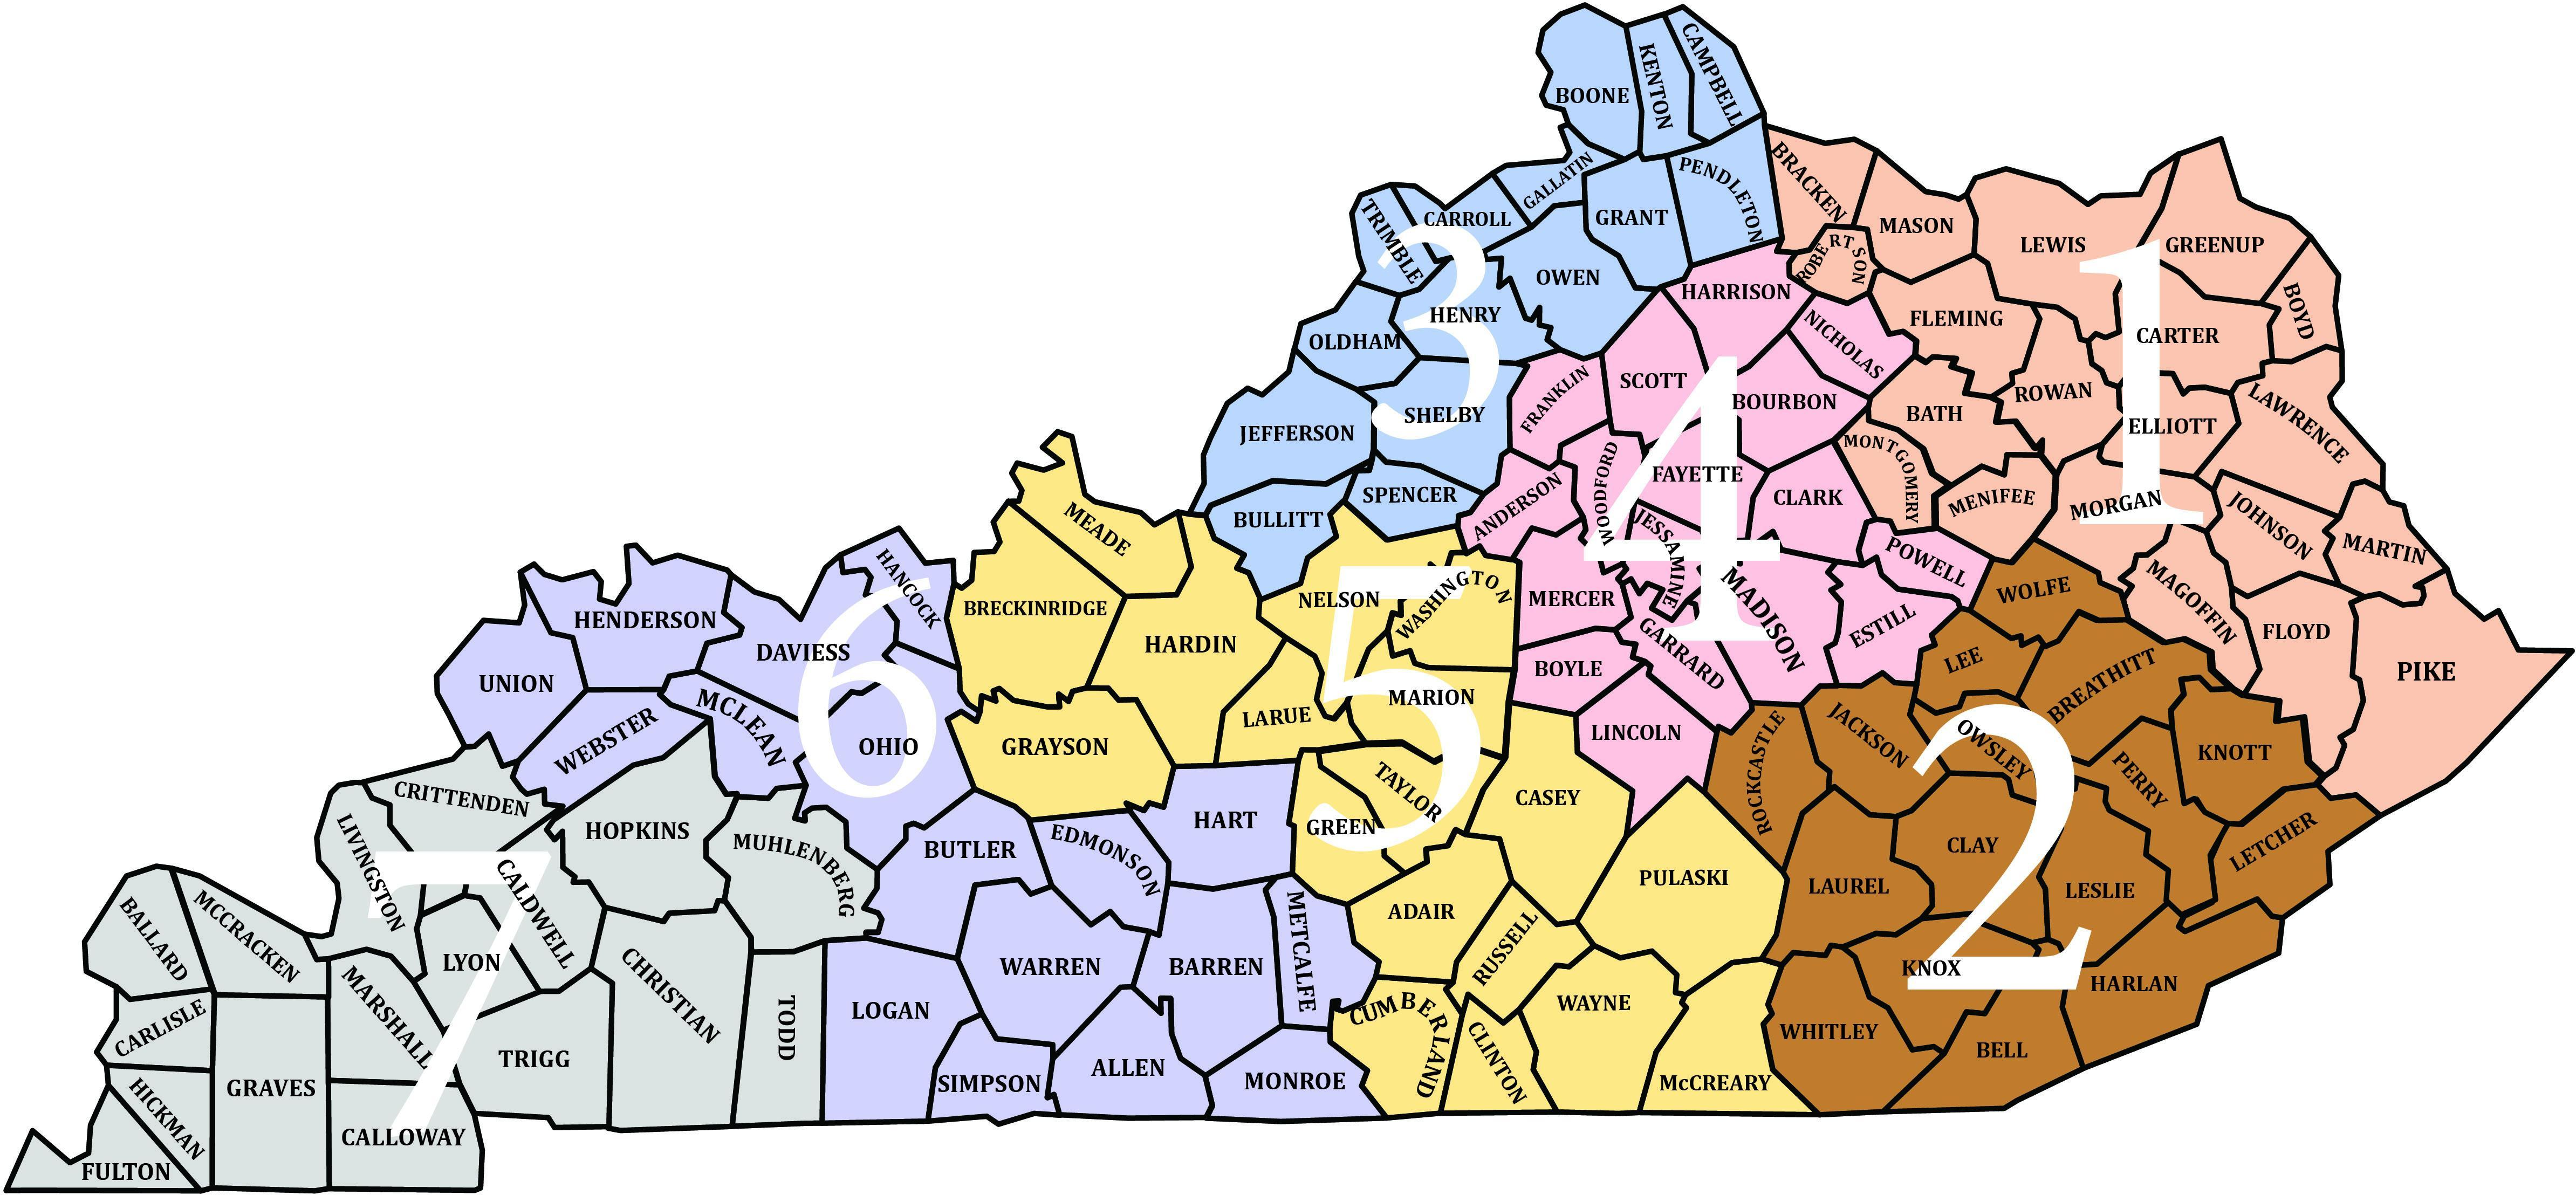 map of Kentucky district boundaries